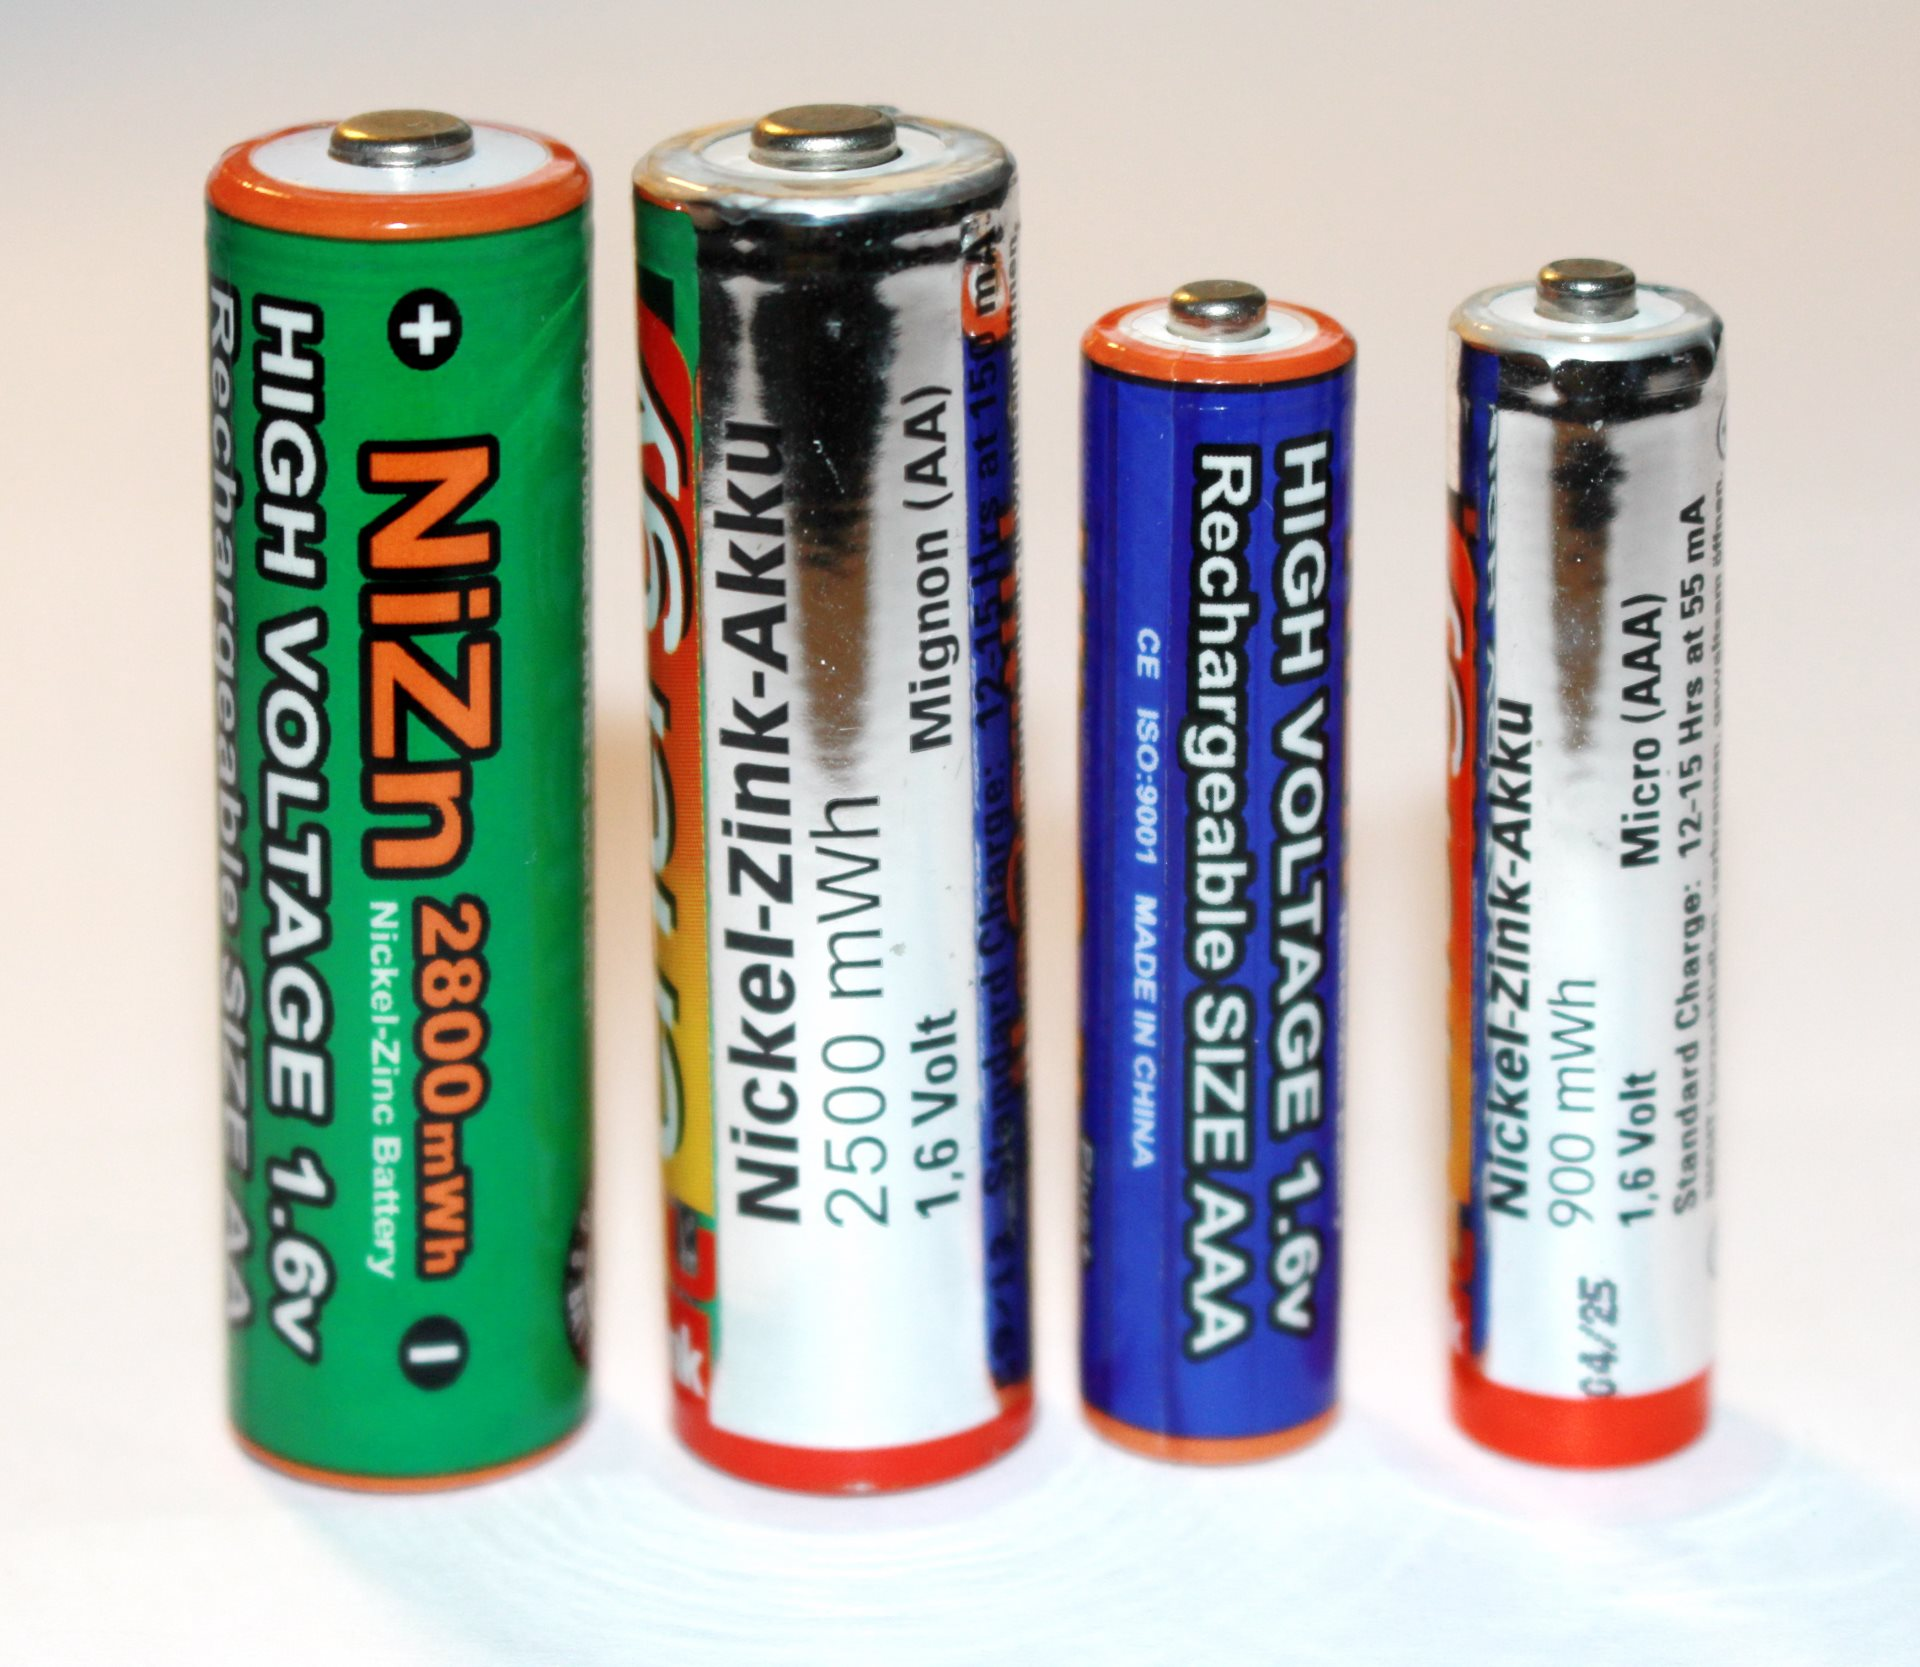 1 5 Volt Batterie Nickel Zink Akkumulator Wikipedia